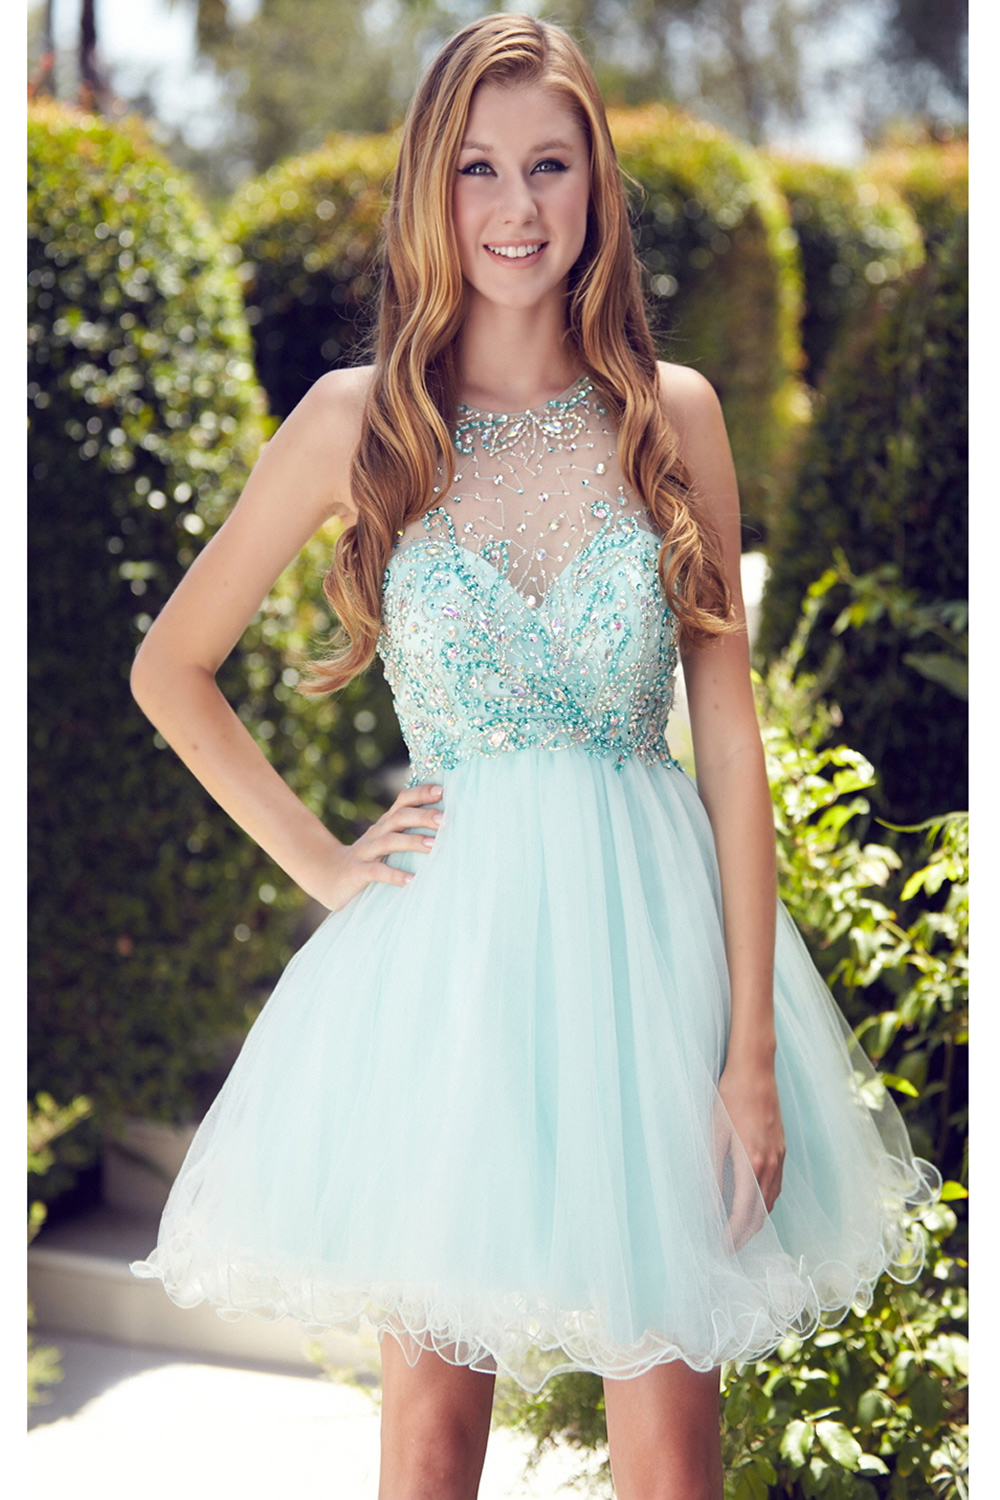 bb64a4b69b6 New Design Sweetheart Beading Prom Dresses,Cap Sleeves Short Prom Dresses,Backless  Homecoming Dresses